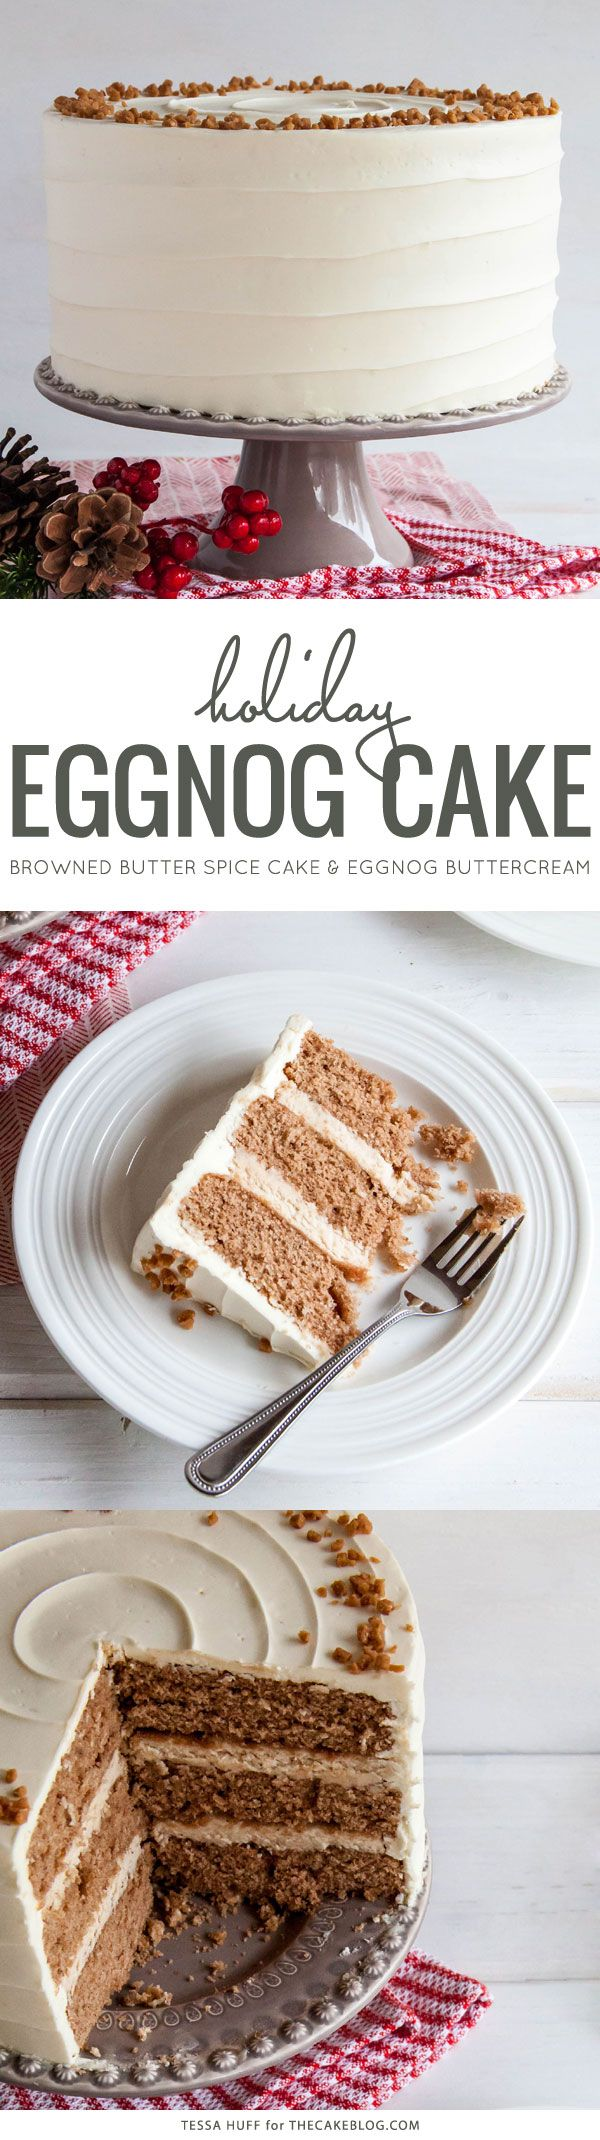 Eggnog Cake | a browned butter spice cake with eggnog buttercream | by Tessa Huff for TheCakeBlog.com